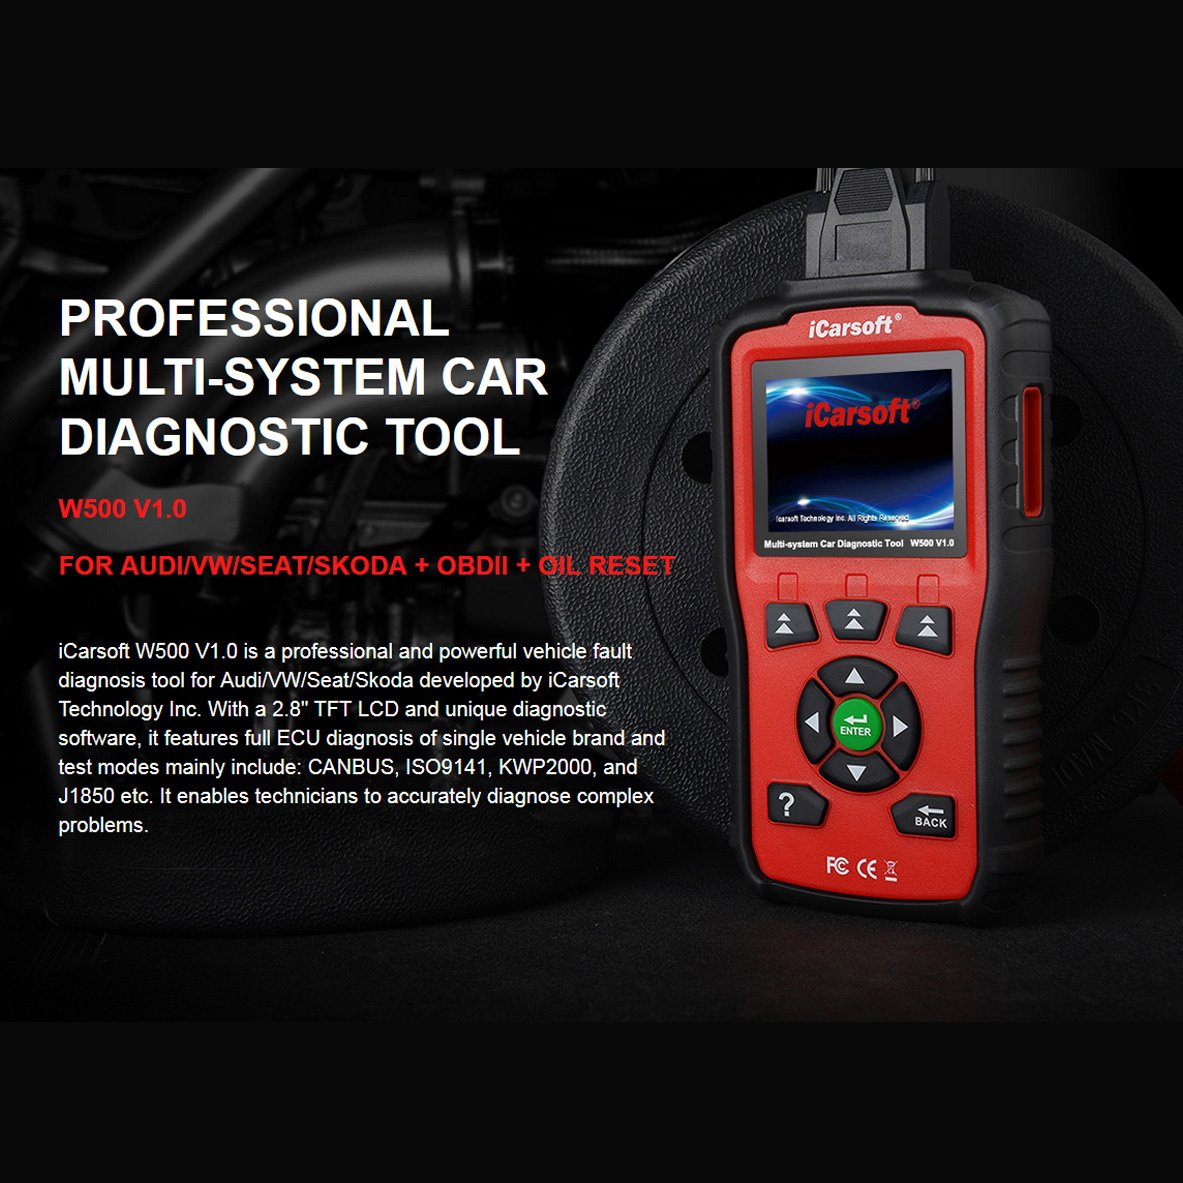 iCarsoft Auto Diagnostic Scanner W500 V1.0 for Audi/VW/Seat/Skoda with ABS Scan,Oil Service Reset ect by iCarsoft (Image #5)